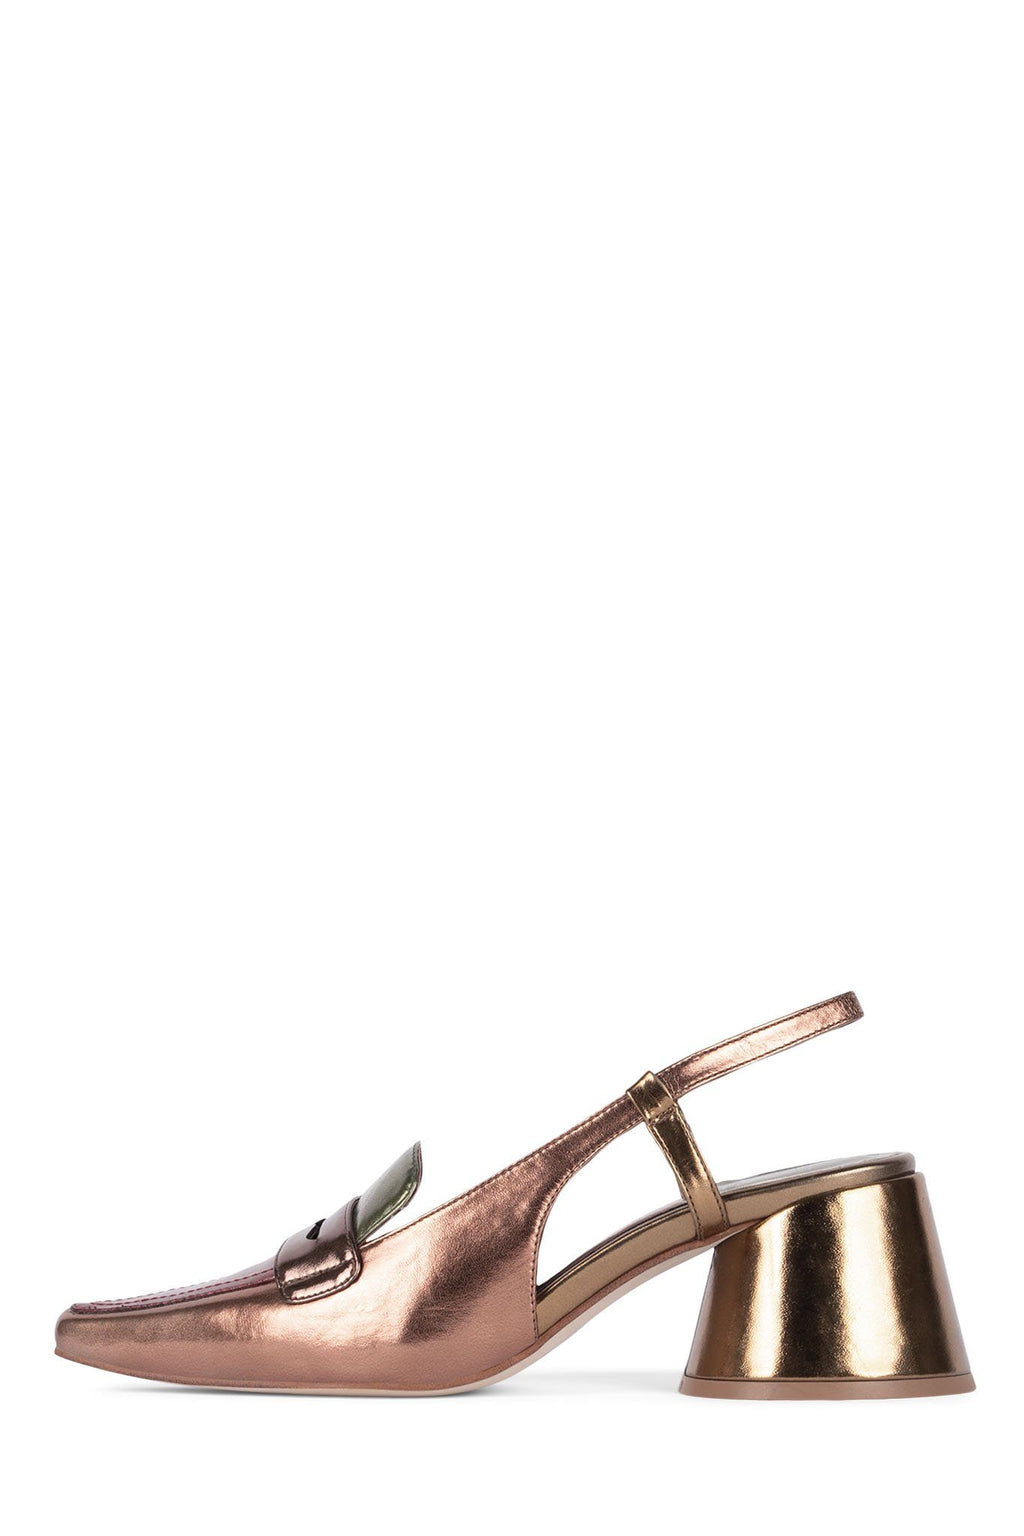 FERWAY Pump Jeffrey Campbell Bronze Metallic Multi 6